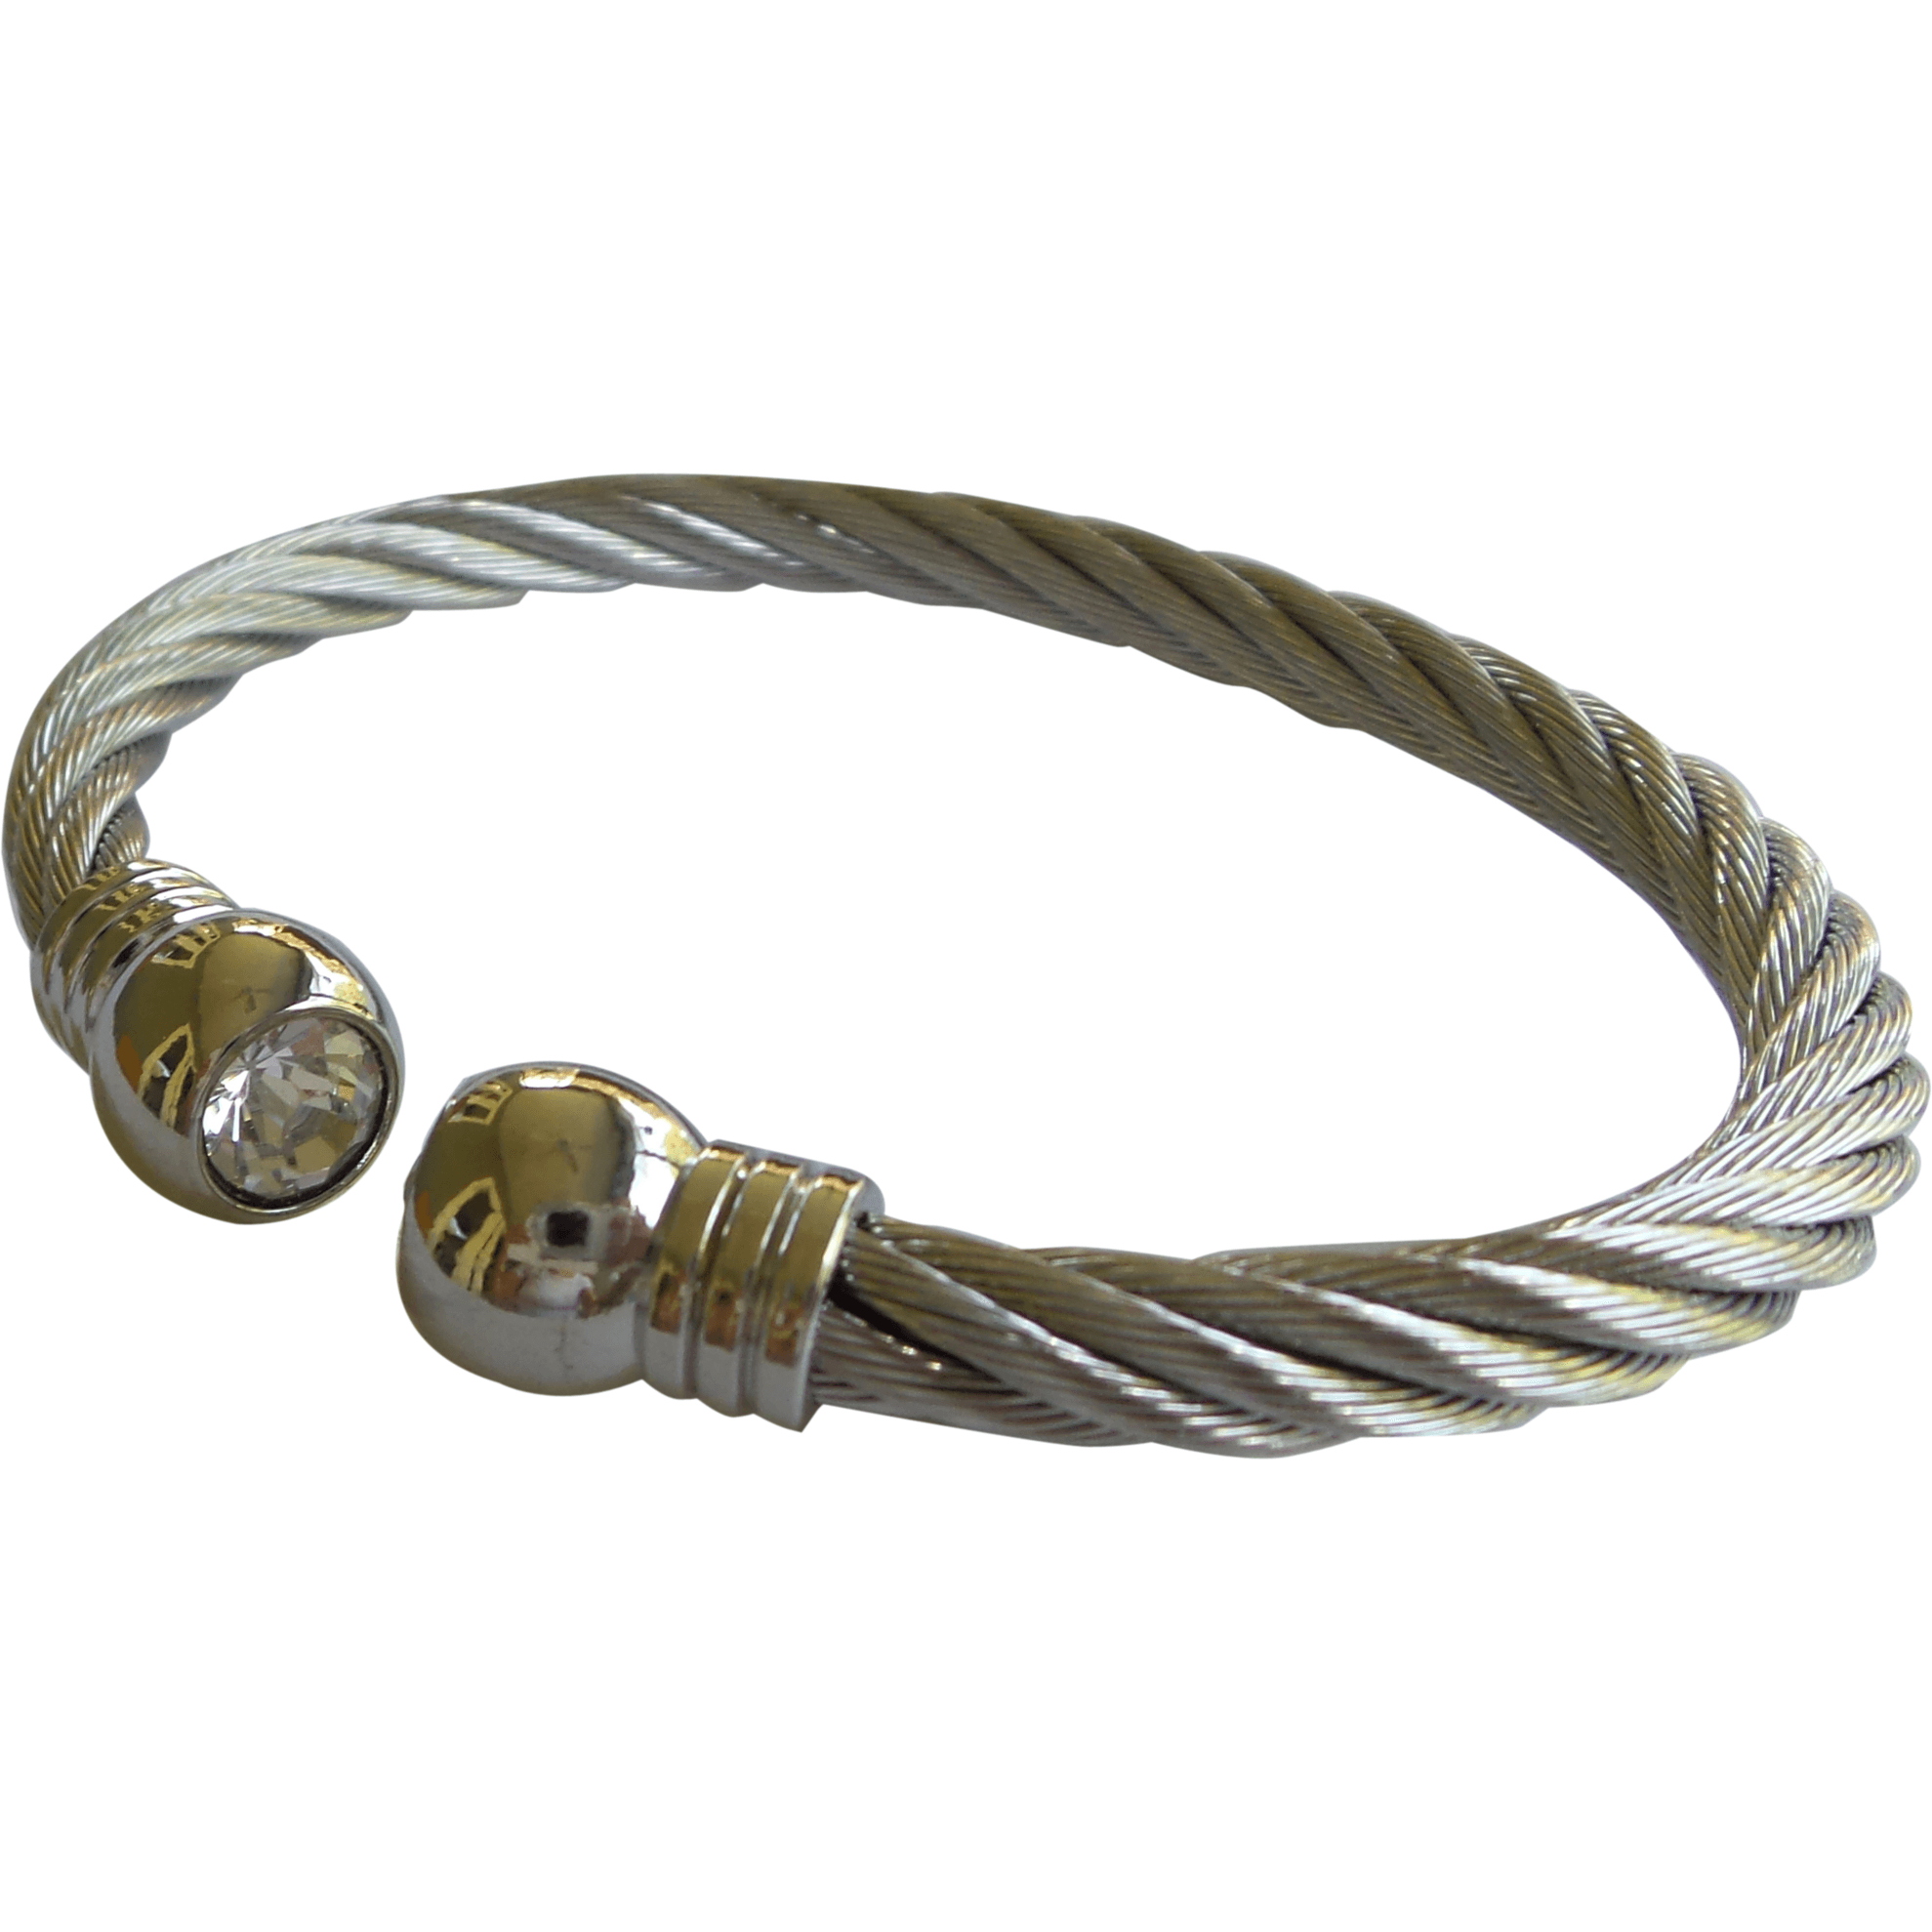 8f3166a499b Stainless Steel Twisted Cable Cuff Bracelet Clear Stone Silver Tips - Beads  and Dangles